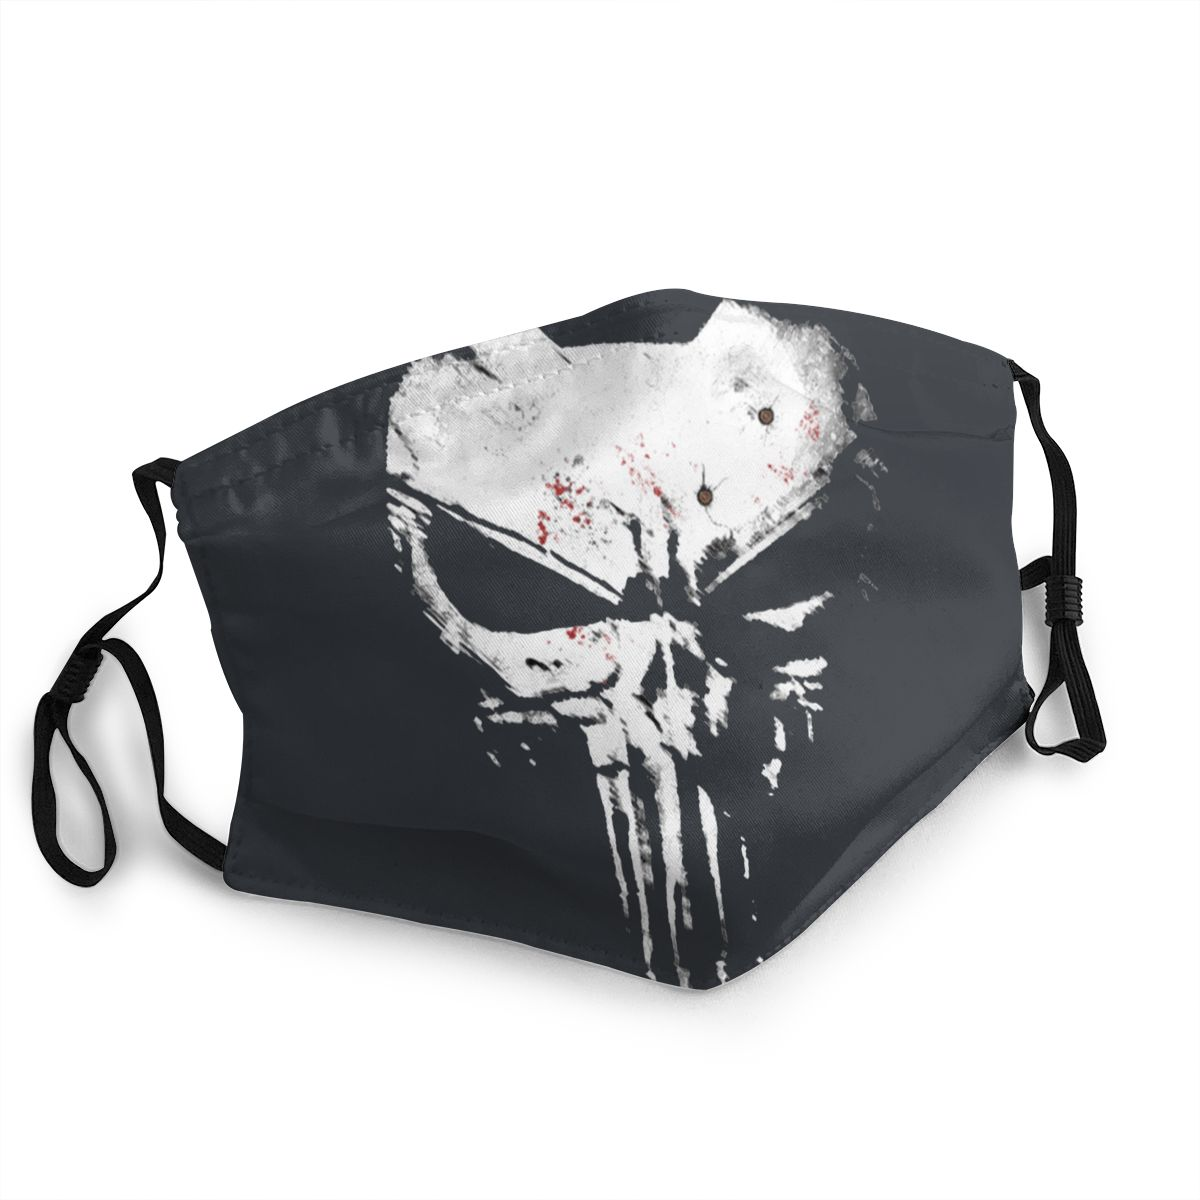 The Skull Punisher Adult Non-Disposable Mouth Face Mask Pattern Anti Haze Dust Protection Mask Respirator Mouth Muffle